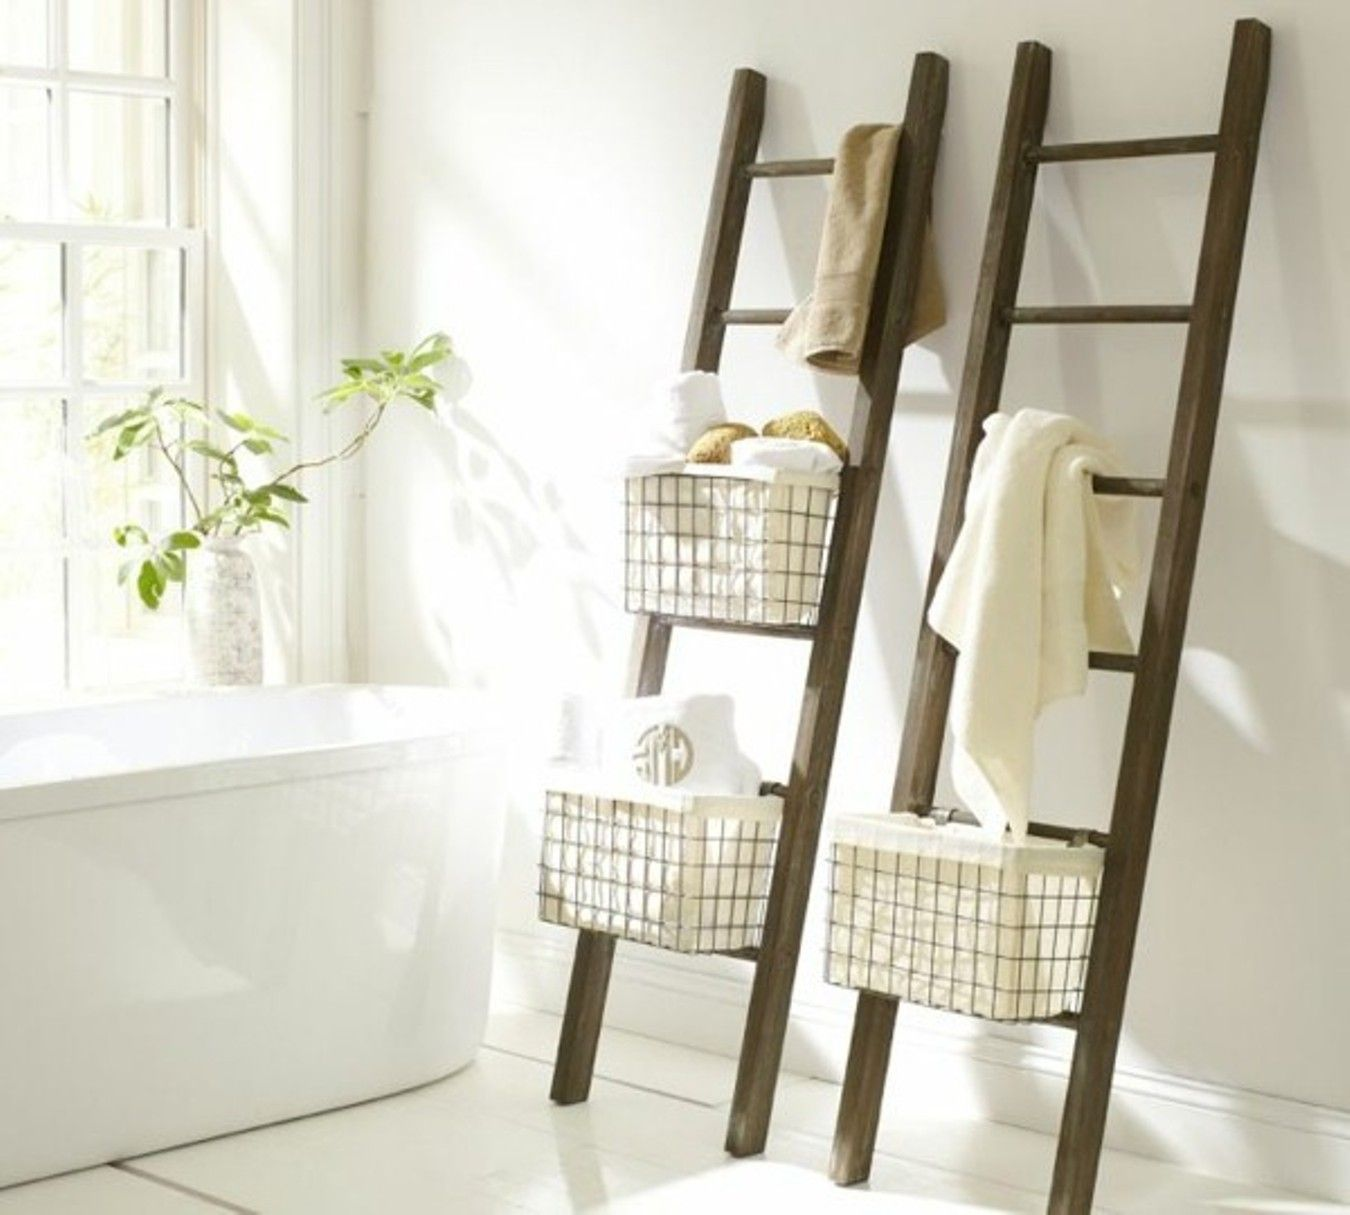 Holzleiter Handtuchhalter Image Of Towel Ladder White Home Decor In 2019 Ladder